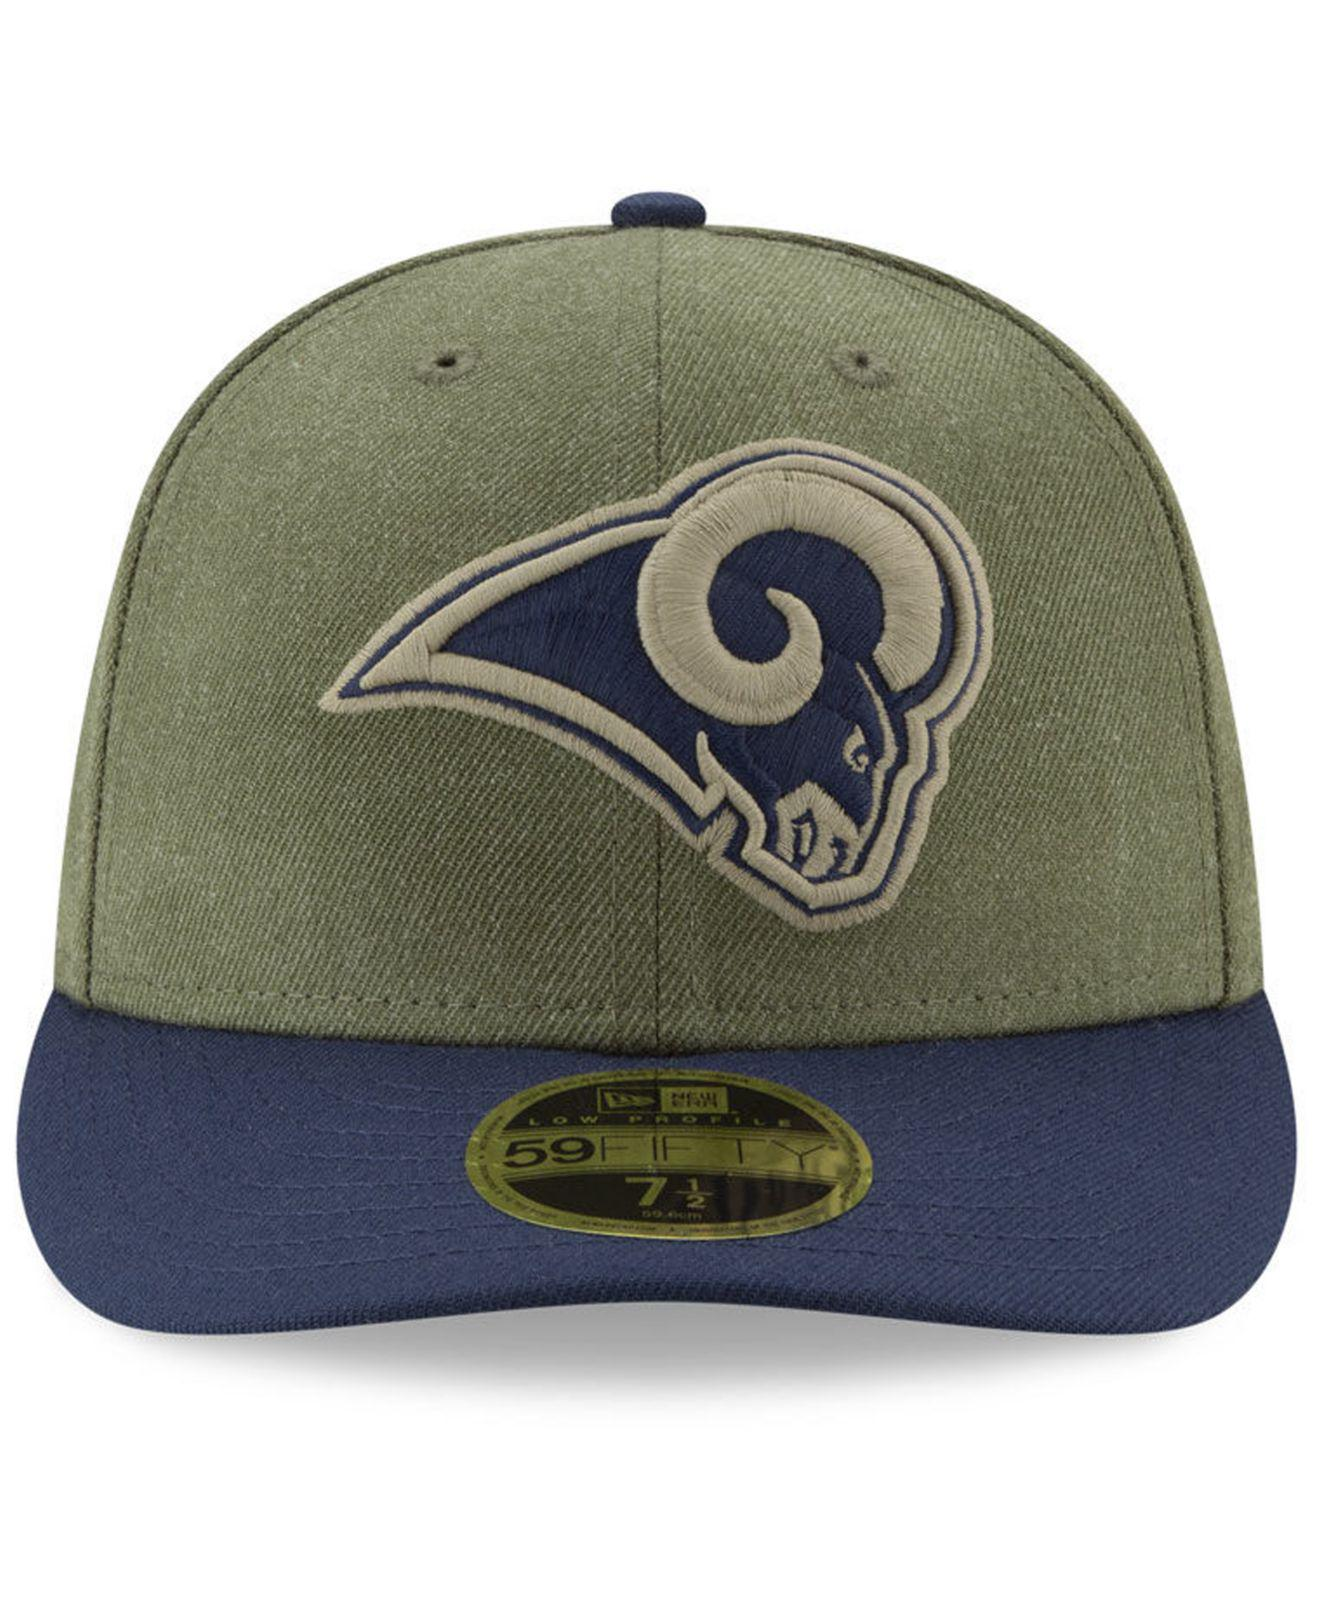 reputable site 9b04f ed9c4 KTZ Los Angeles Rams Salute To Service Low Profile 59fifty Fitted ...